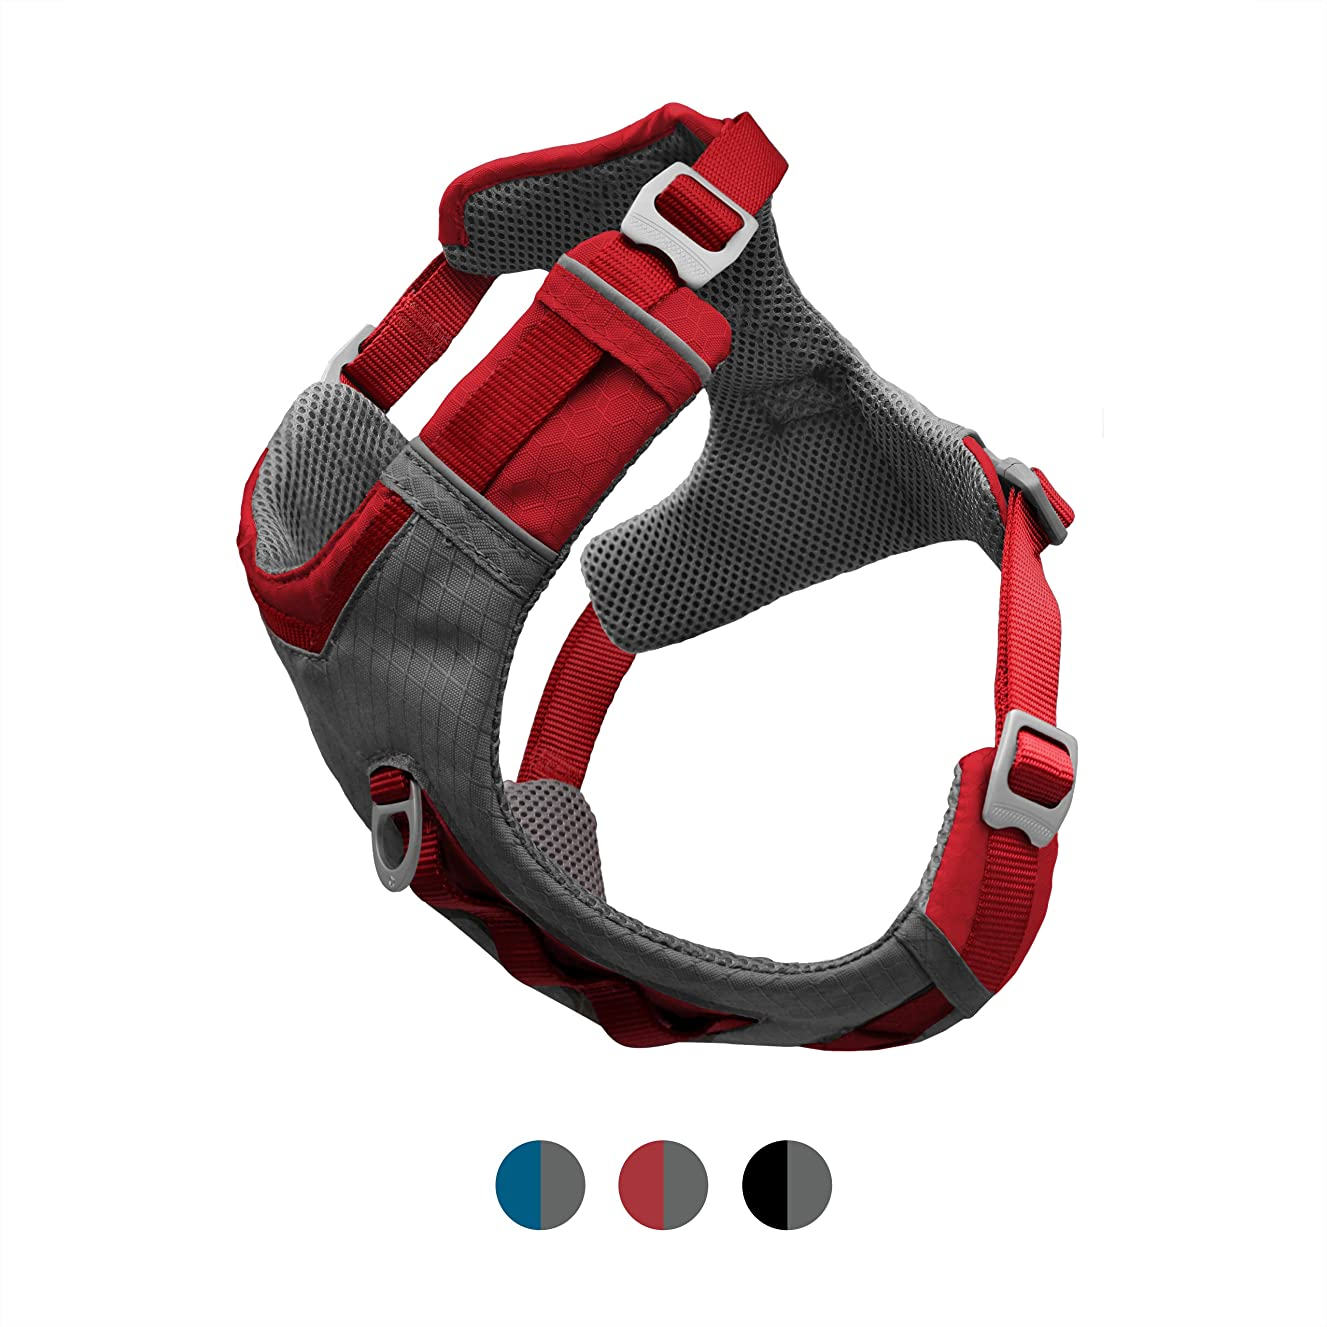 Kurgo Dog Harness for Large, Medium & Small Dogs | Reflective Harness for Running, Walking & Hiking | Everyday Adventure Pet Journey Air Style | Black | Blue | Red